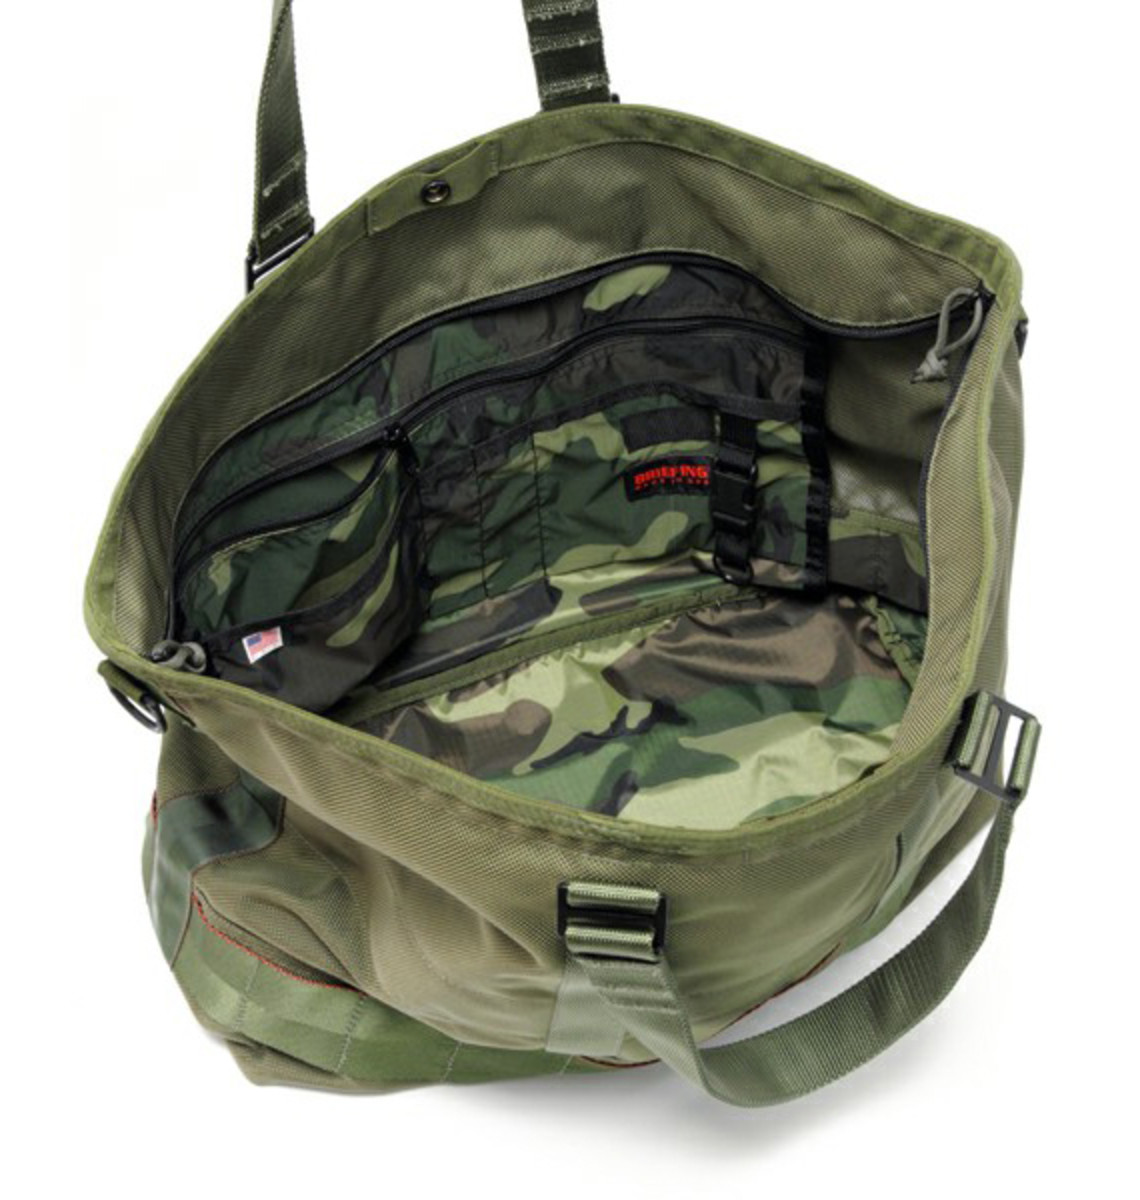 beams-plus-briefing-mil-training-tote-bag-05